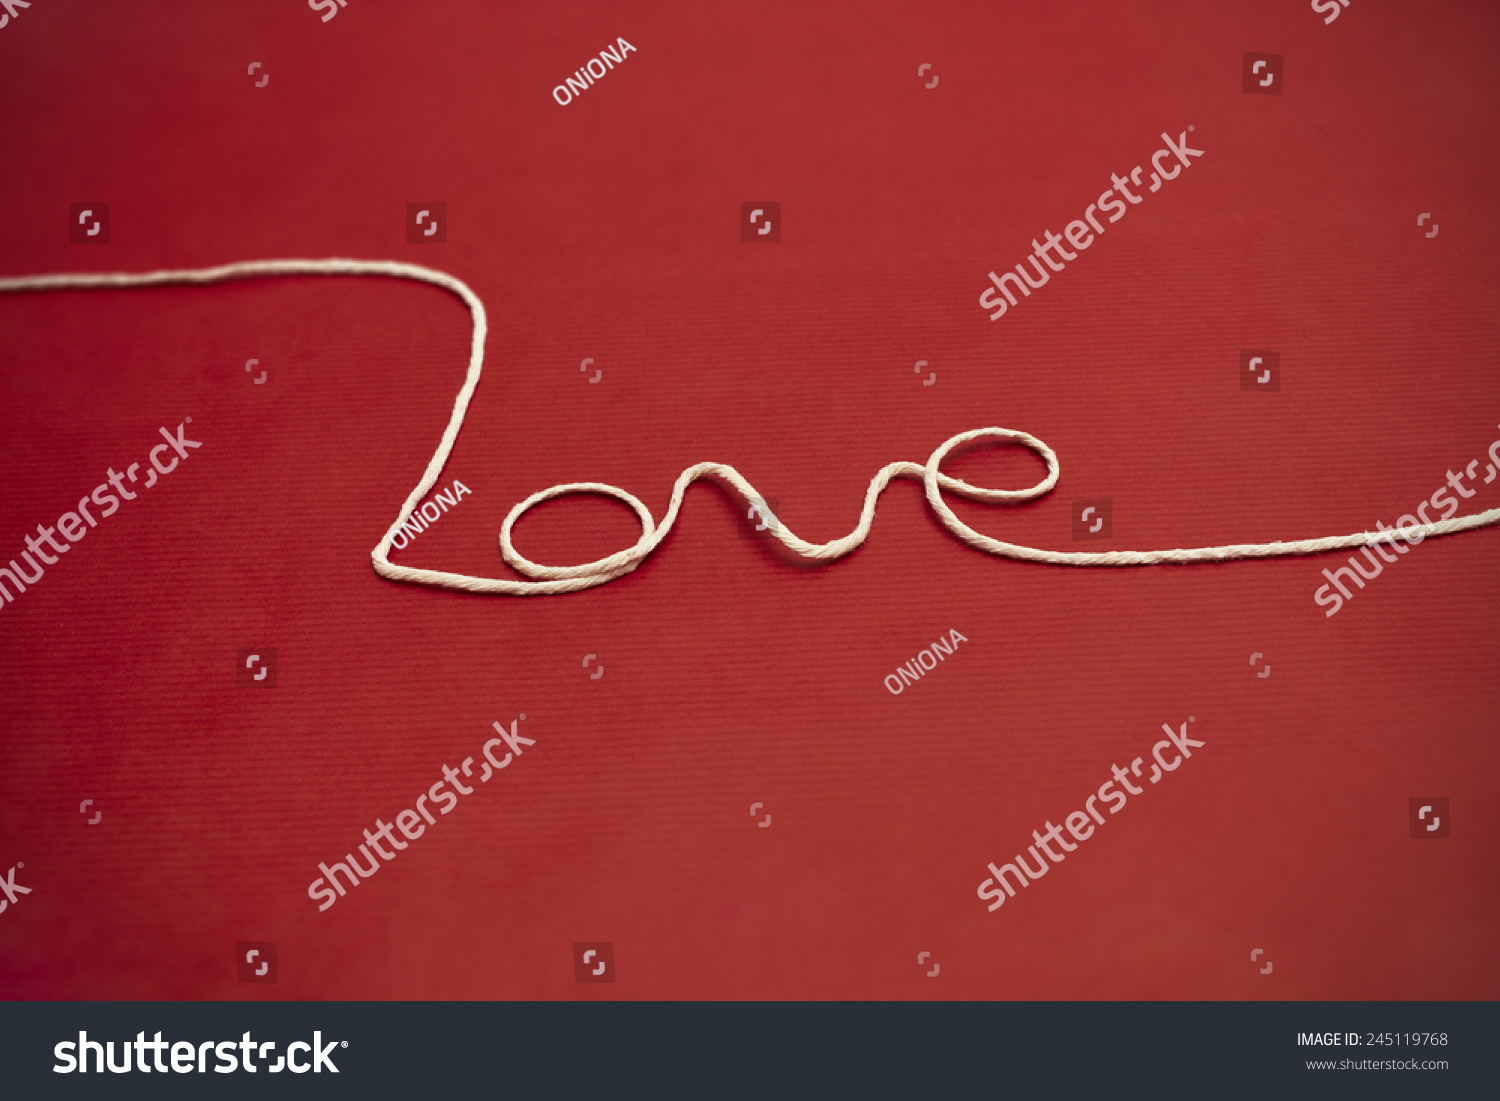 Love Word Made Of White Twine On Red Background For Your Valentine Or Mom